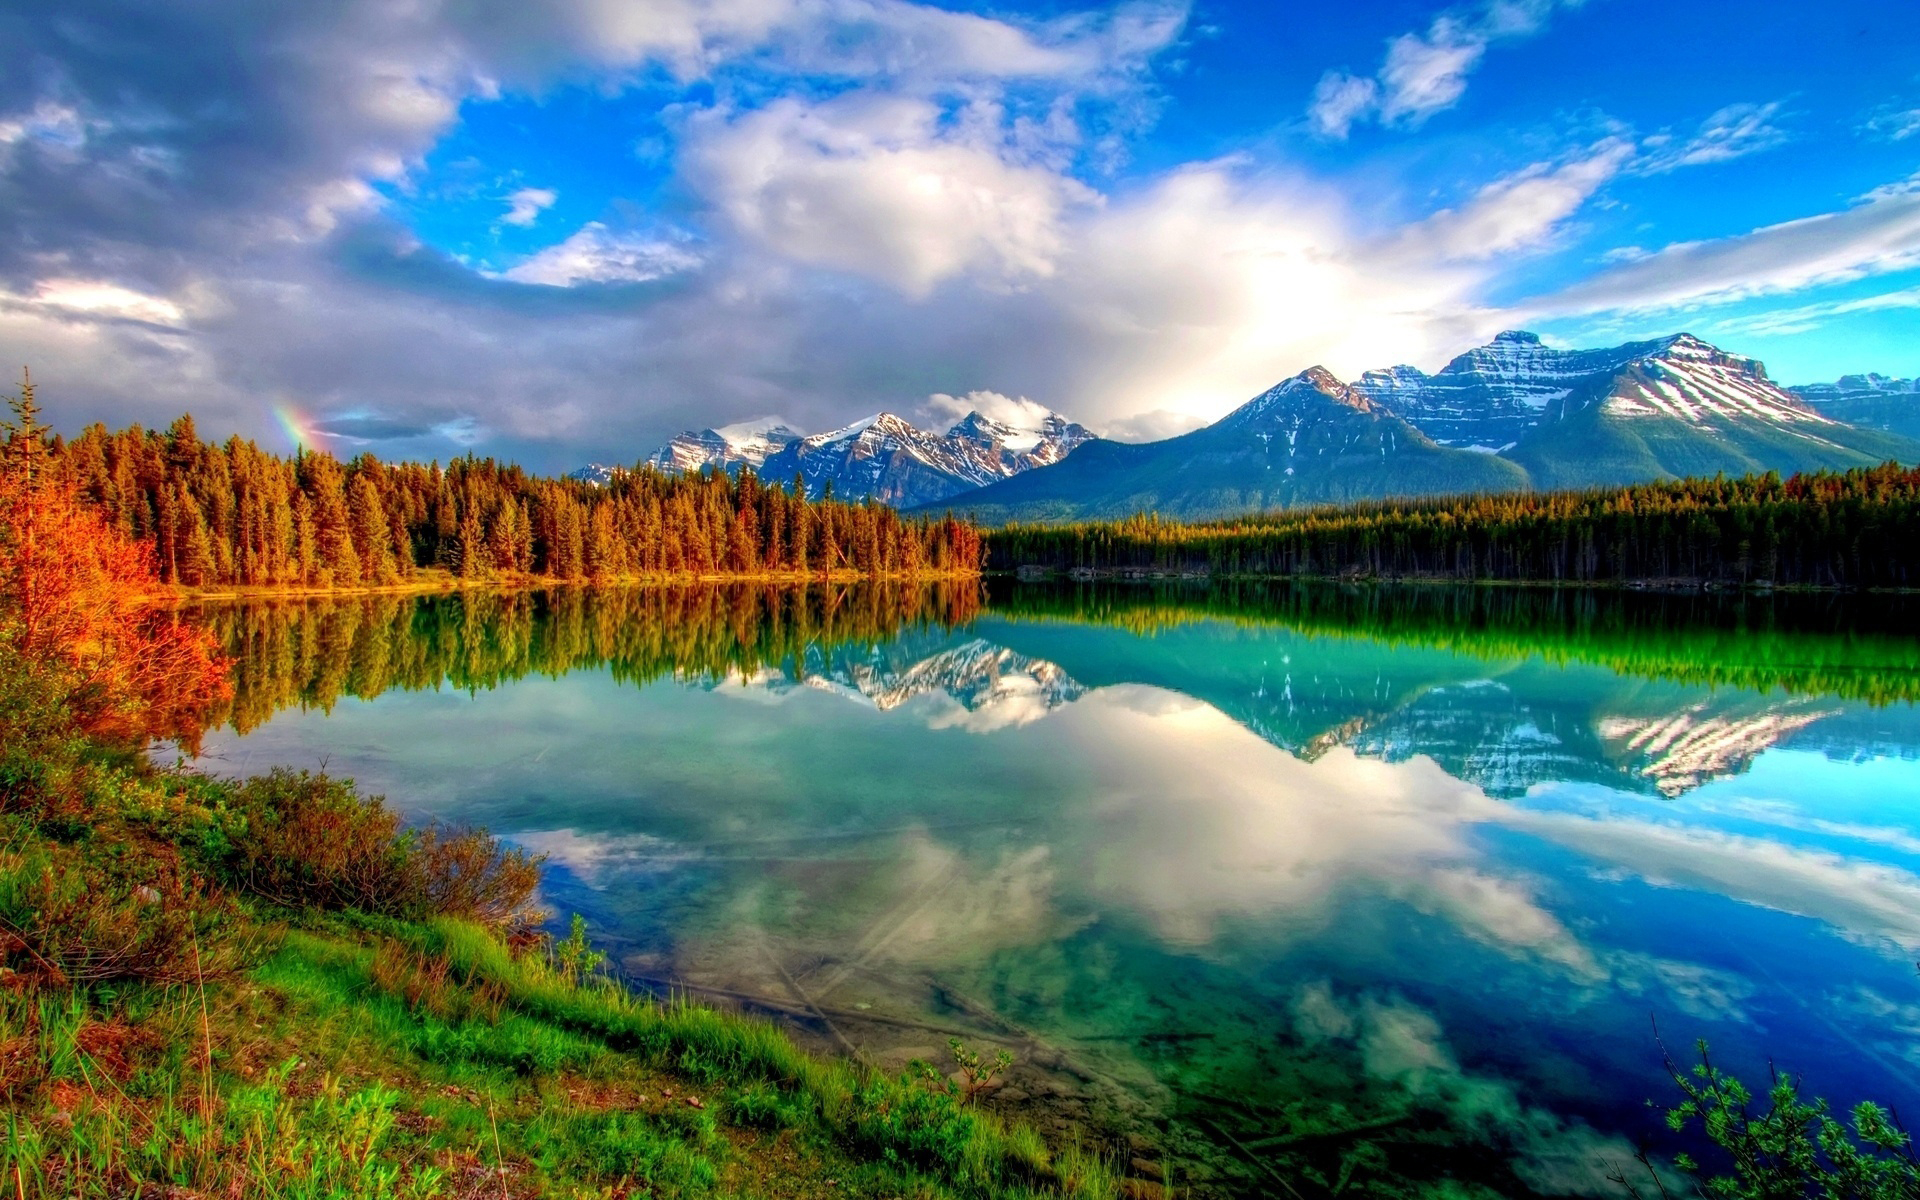 Beautiful scenery wallpapers and images   wallpapers pictures photos 1920x1200